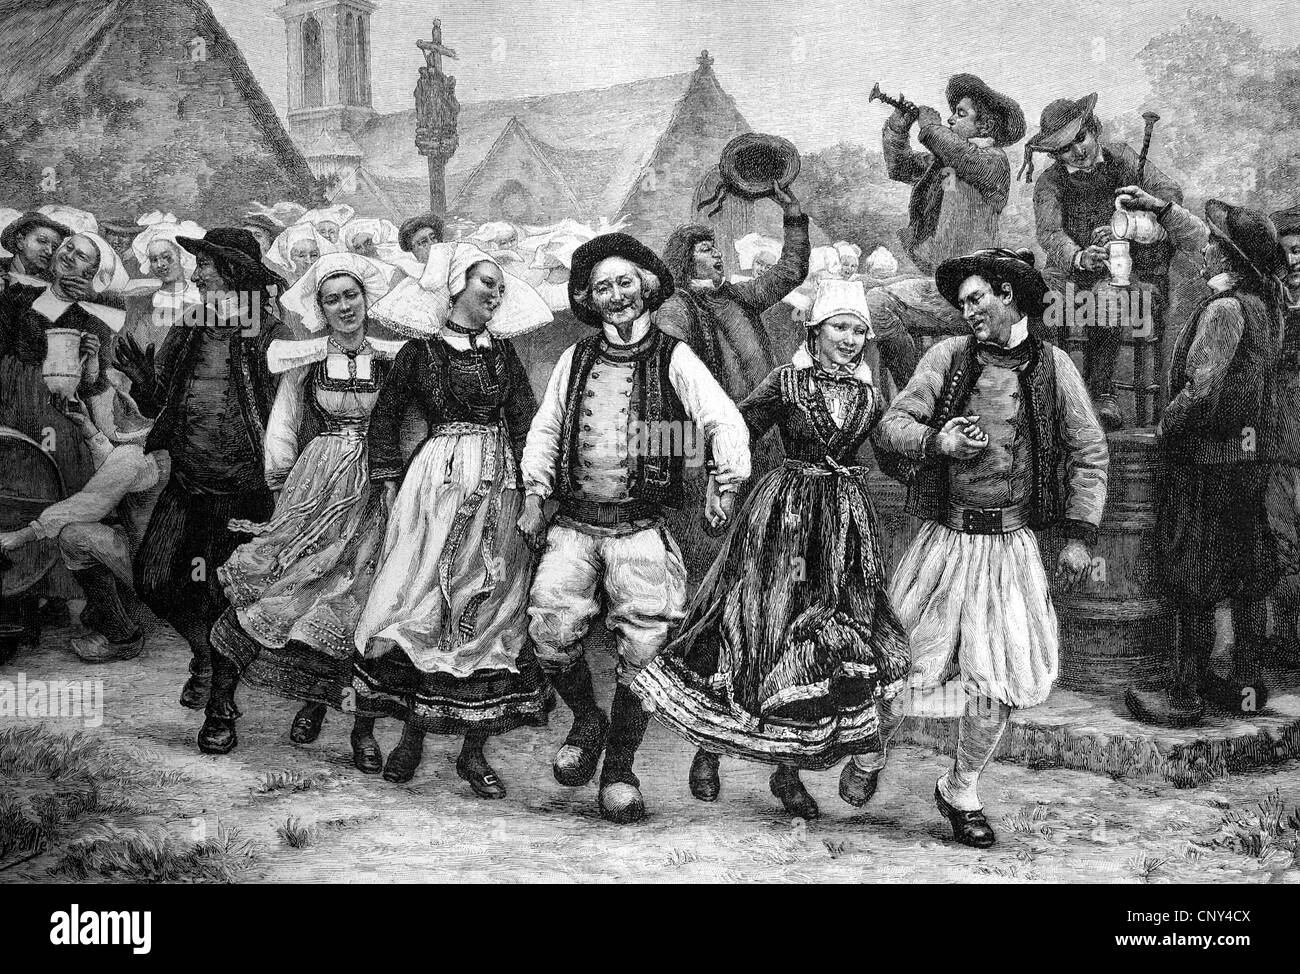 Breton Gavotte, French folk dance, Brittany, France, historical illustration, wood engraving, about 1888 - Stock Image